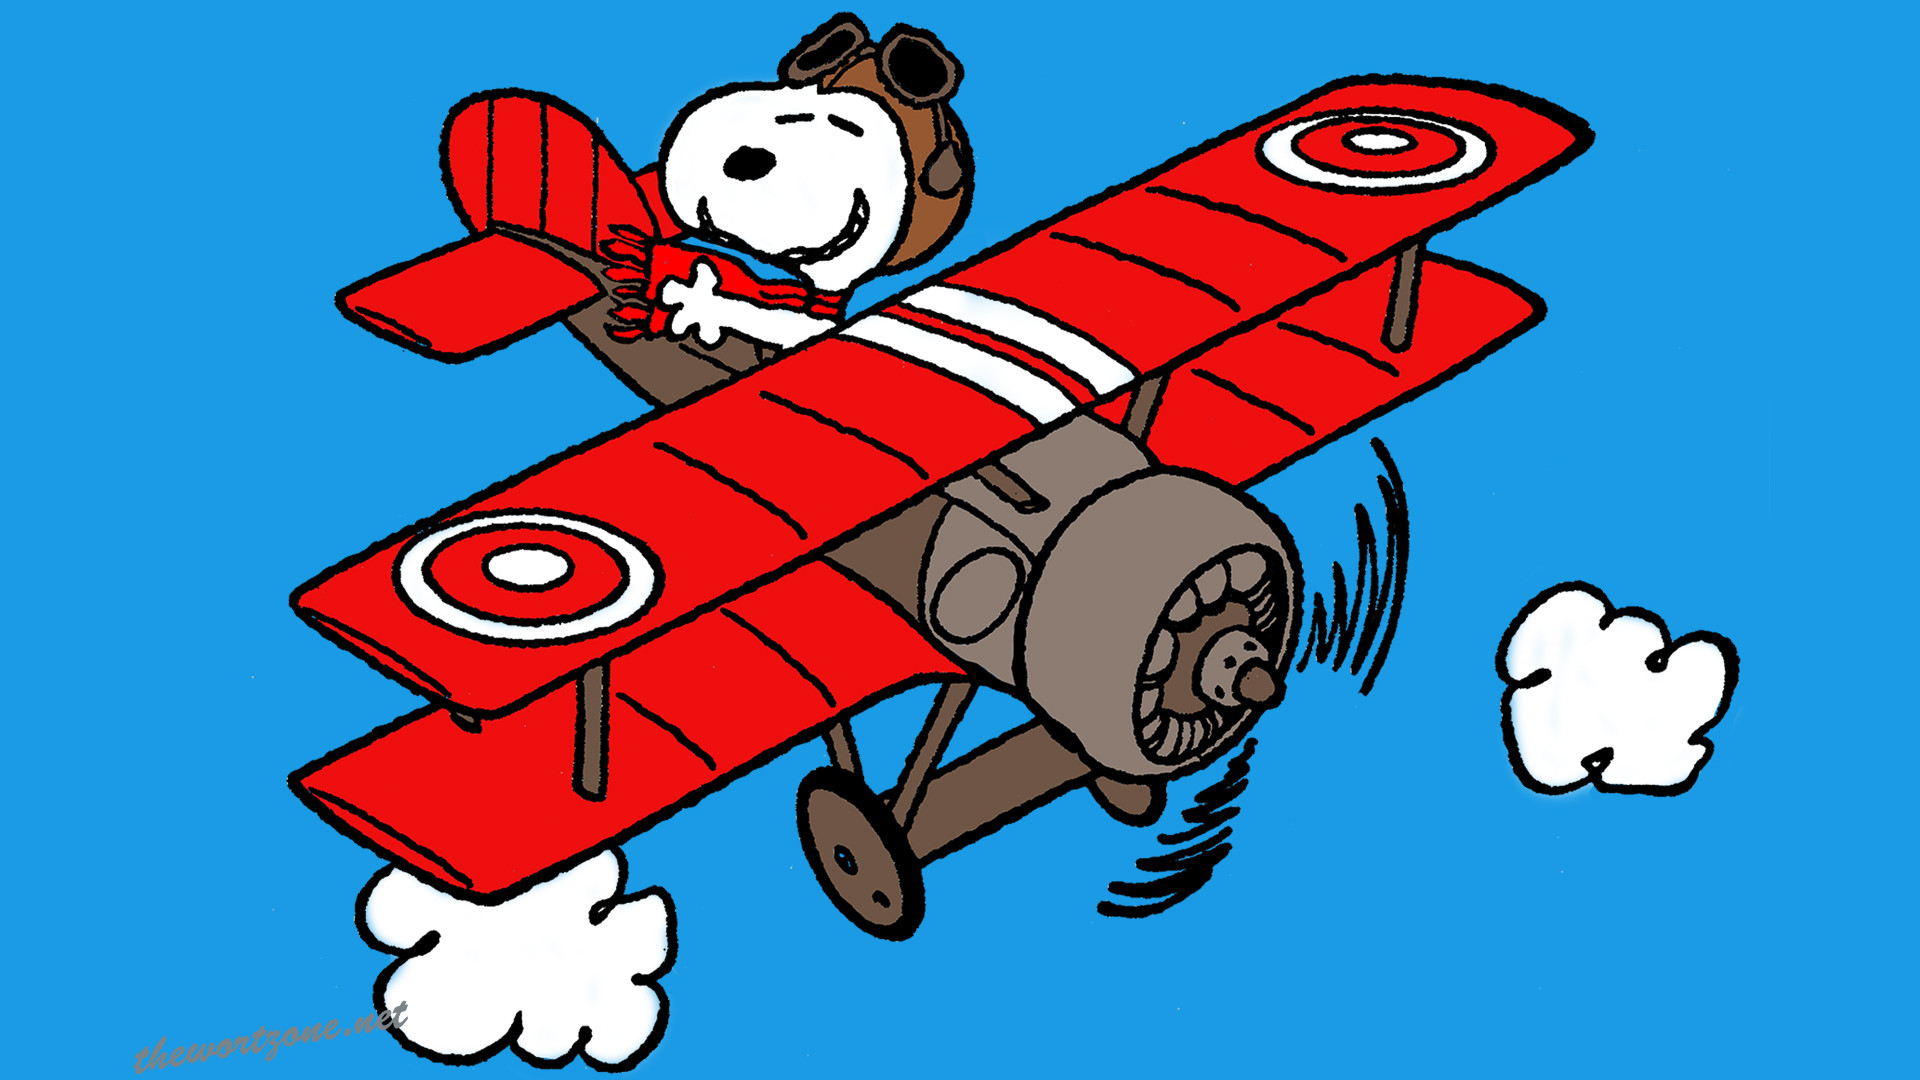 Snoopy desktop wallpaper 18 hd snoopy desktop wallpapers for free download voltagebd Image collections